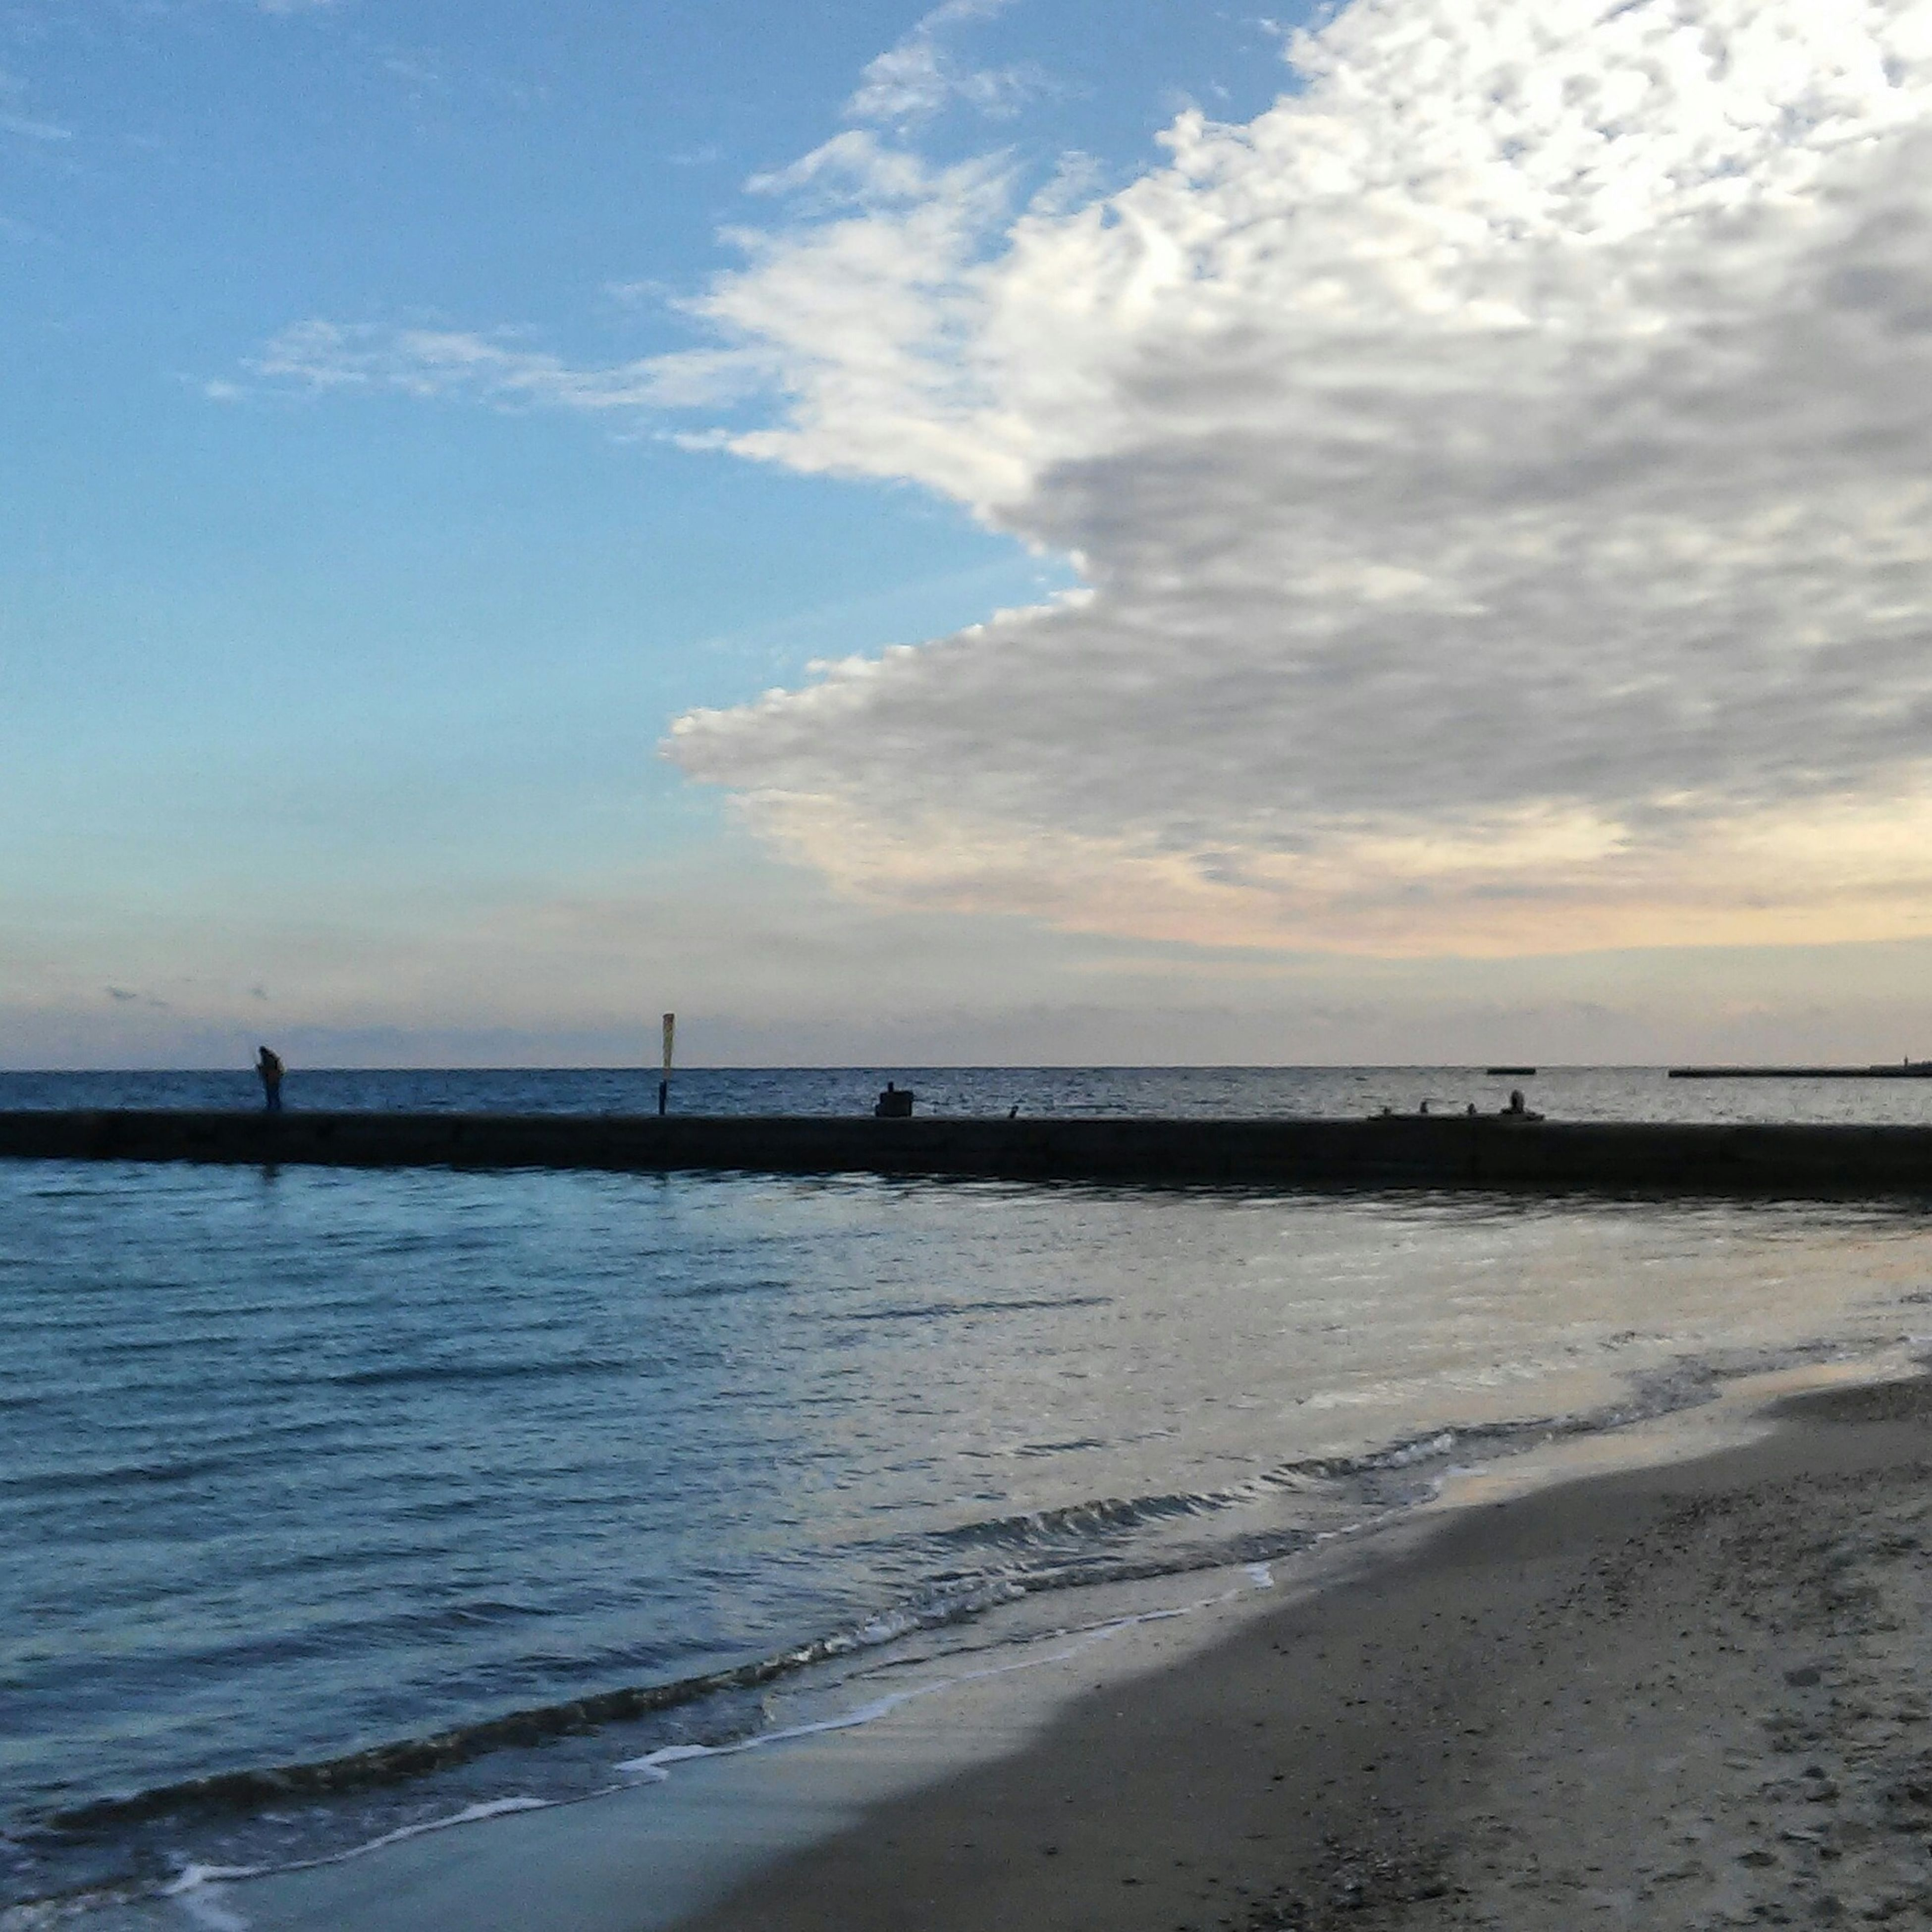 water, sea, sky, tranquil scene, tranquility, scenics, beach, beauty in nature, cloud - sky, horizon over water, nature, shore, cloud, sunset, idyllic, pier, silhouette, cloudy, sand, outdoors